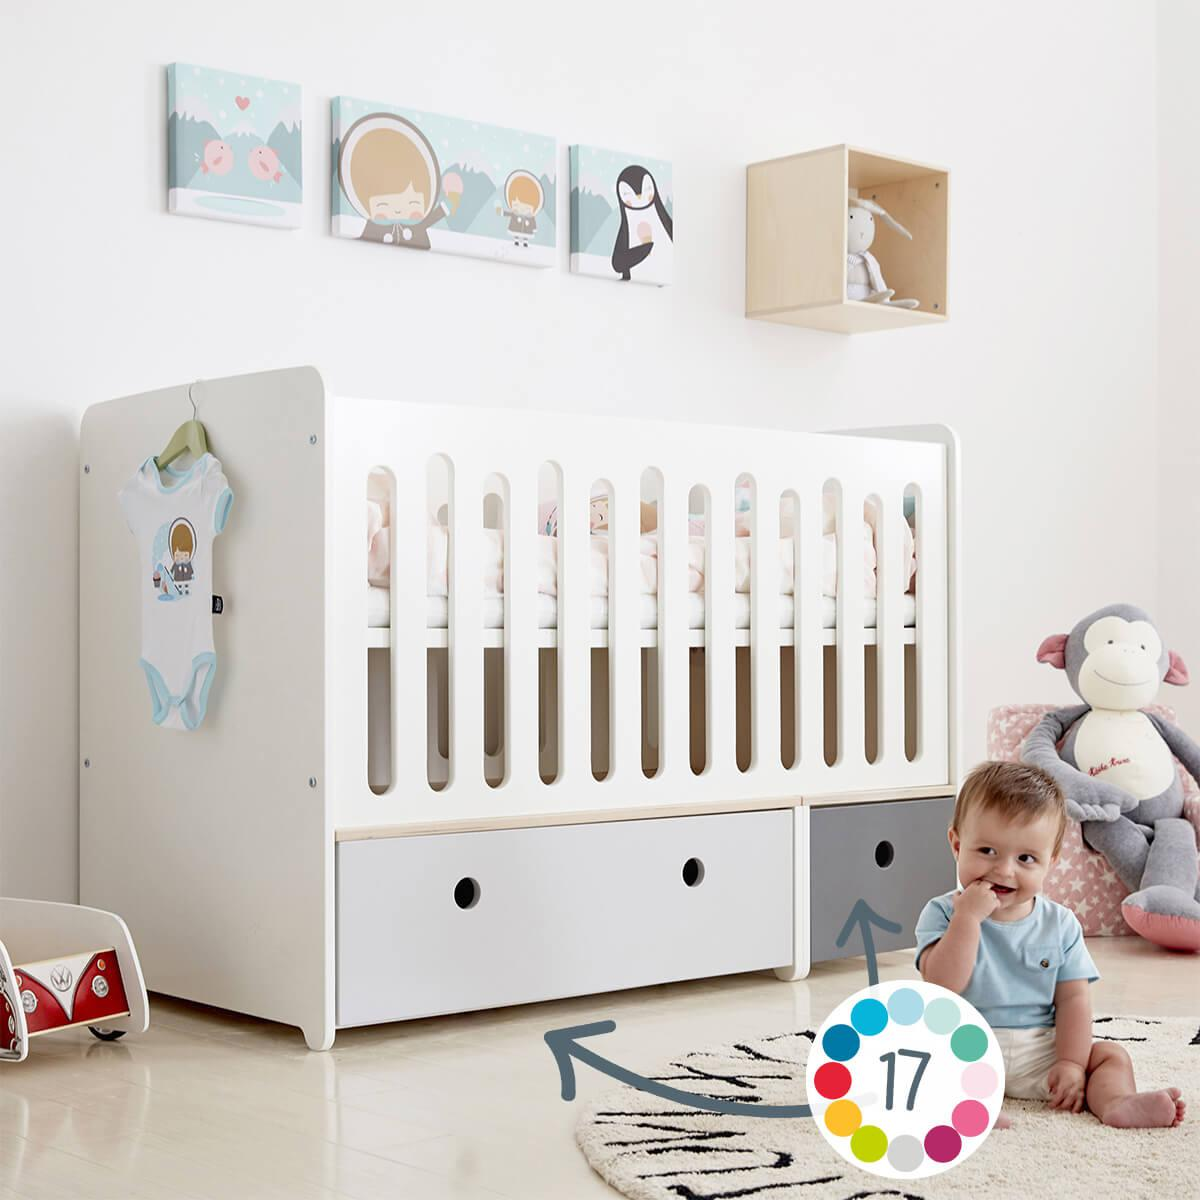 Lit bébé évolutif 70x140cm COLORFLEX Abitare Kids space grey